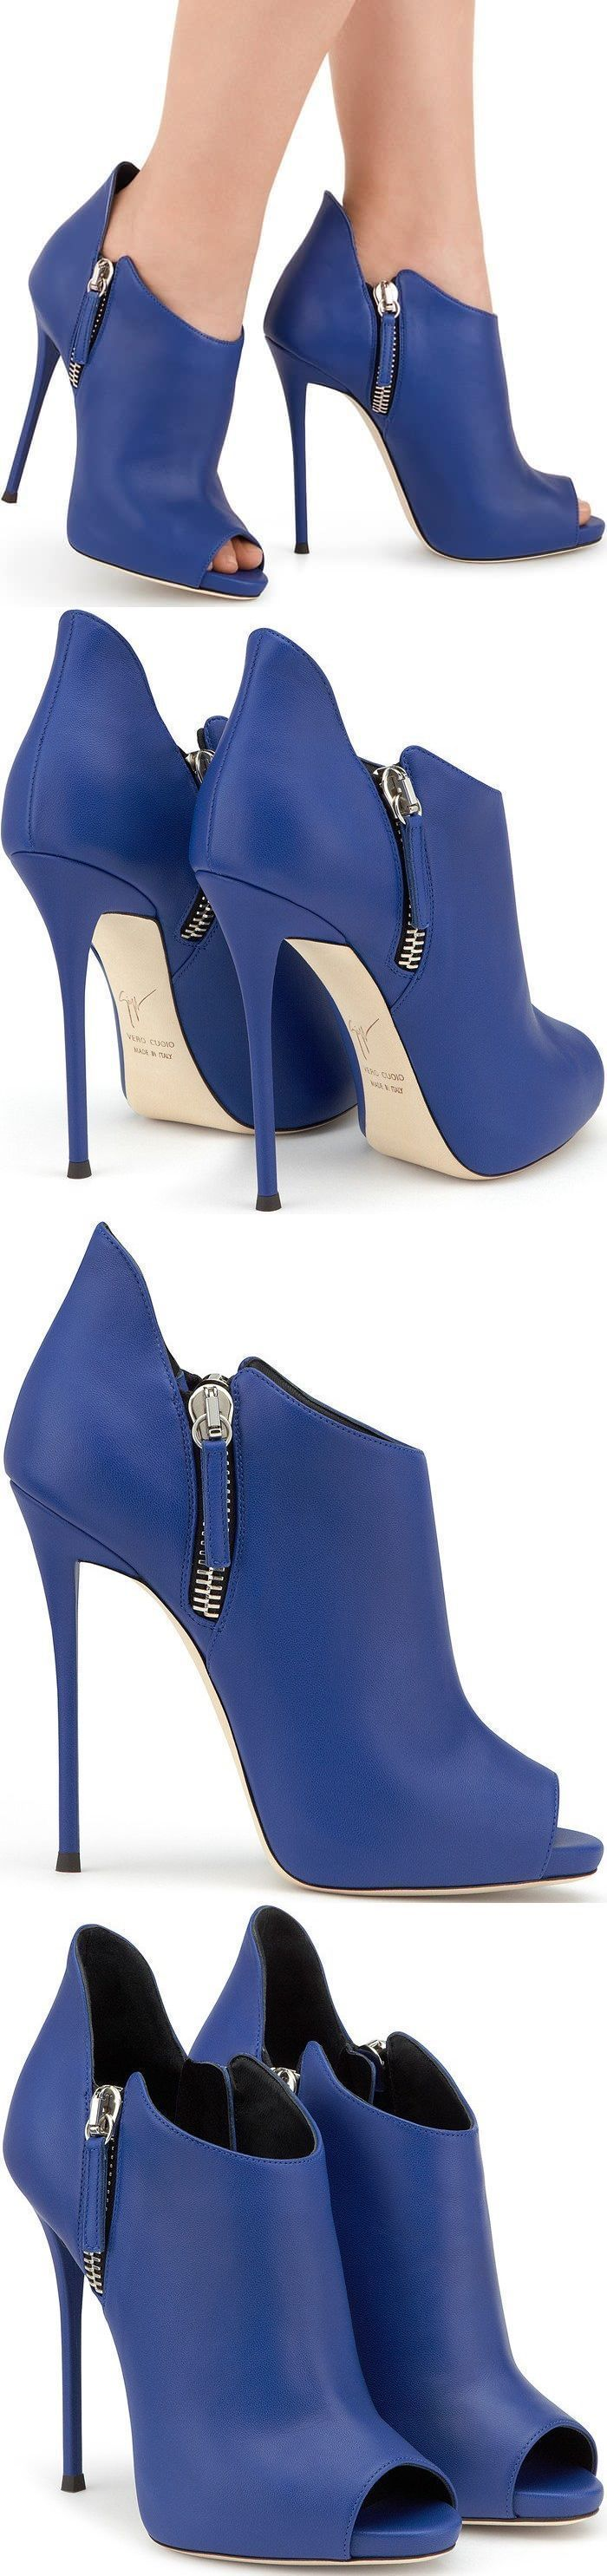 Blue leather 'Malika' booties from Giuseppe Zanotti Design featuring a peep toe, gold-tone hardware, side zip fastenings, a branded insole and a high stiletto heel. #stilettoheelssandals #giuseppezanottiheelsstilettos #giuseppezanottiheelszapatos